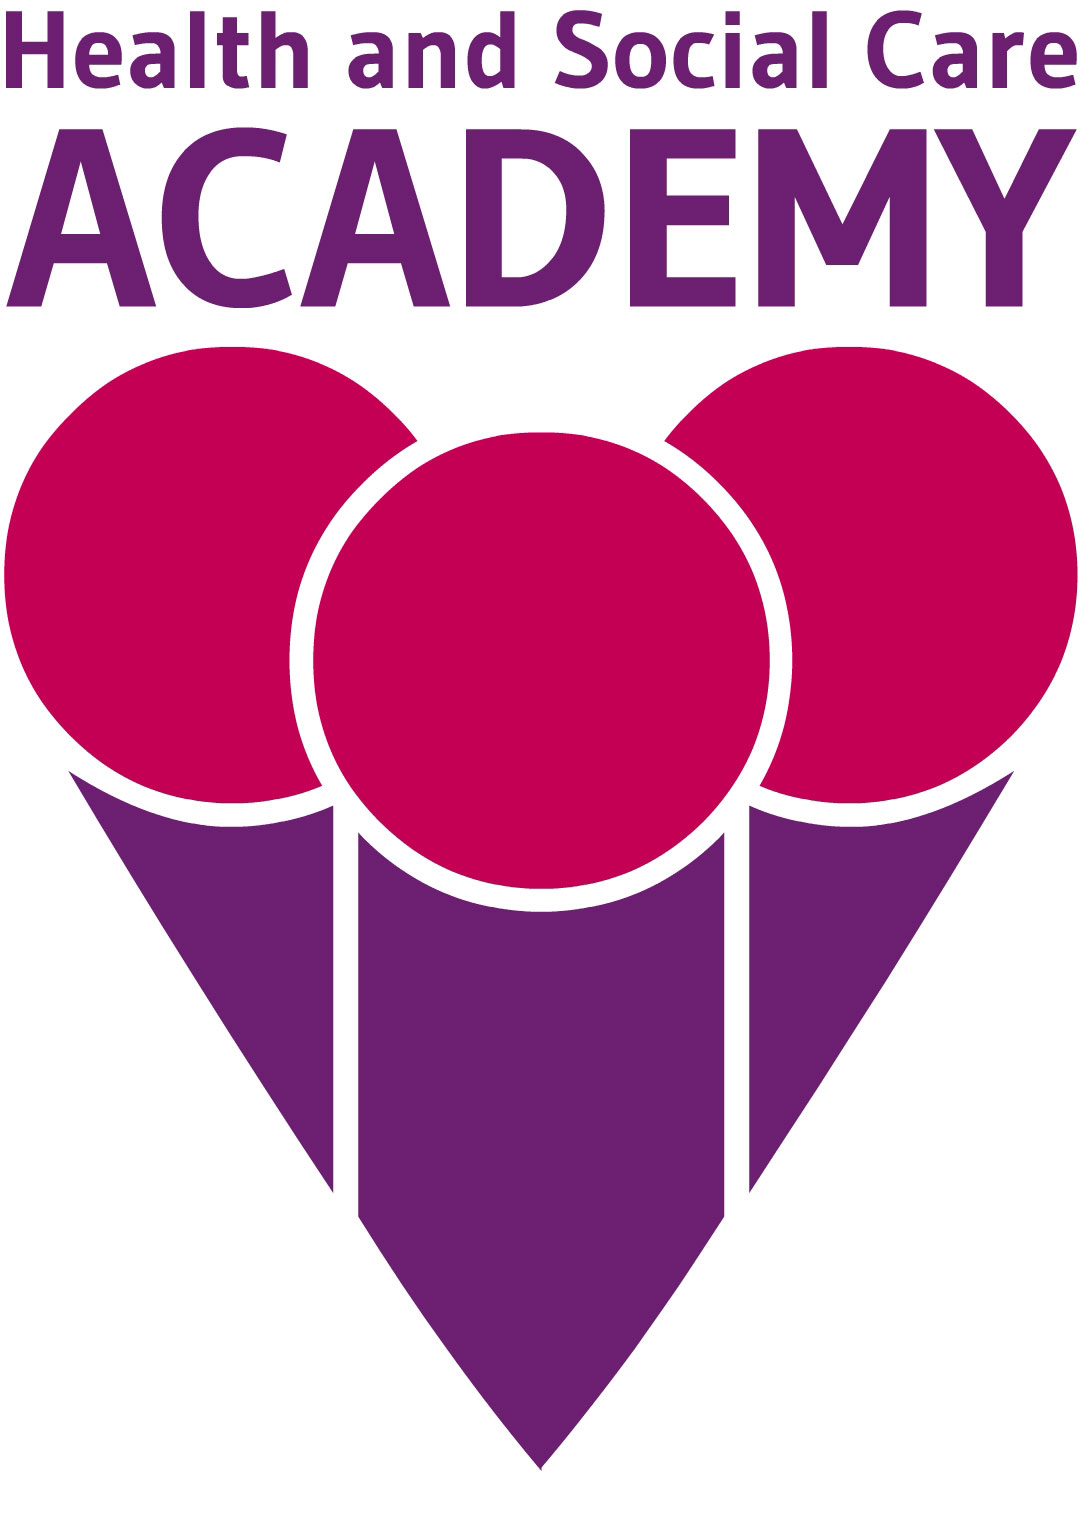 Health and Social Care Academy logo